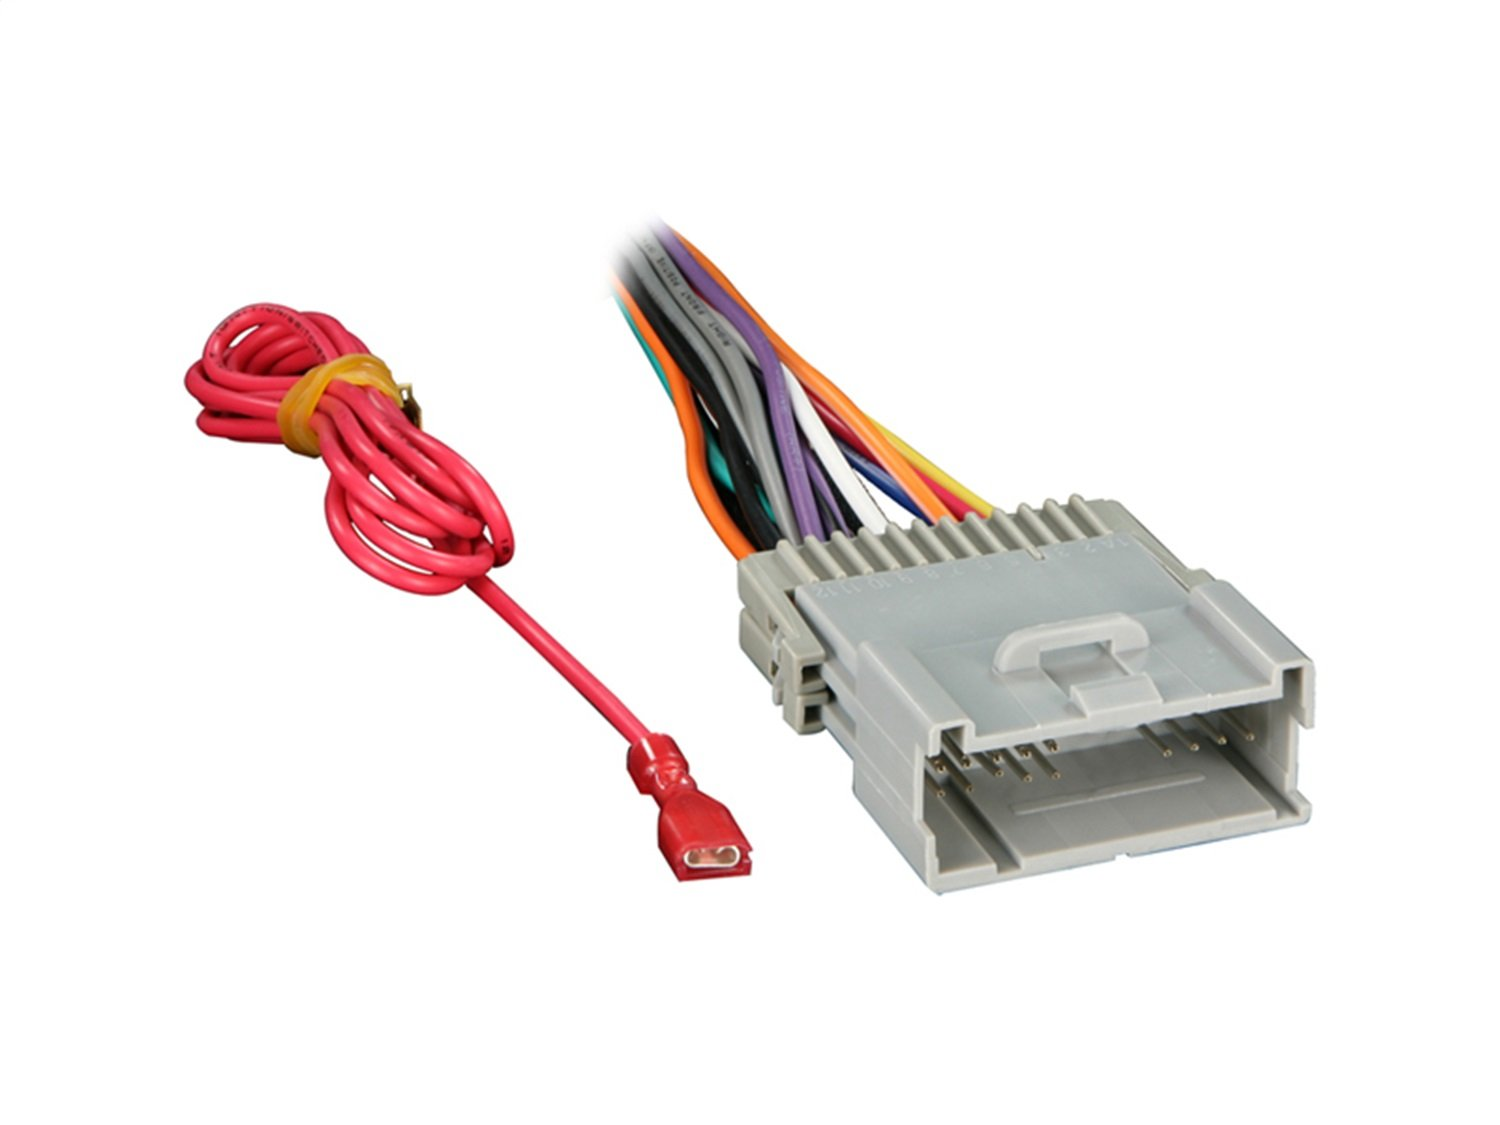 Metra 70 2003 Radio Wiring Harness For Gm 98 08 Quick Connect Connectors Car Electronics